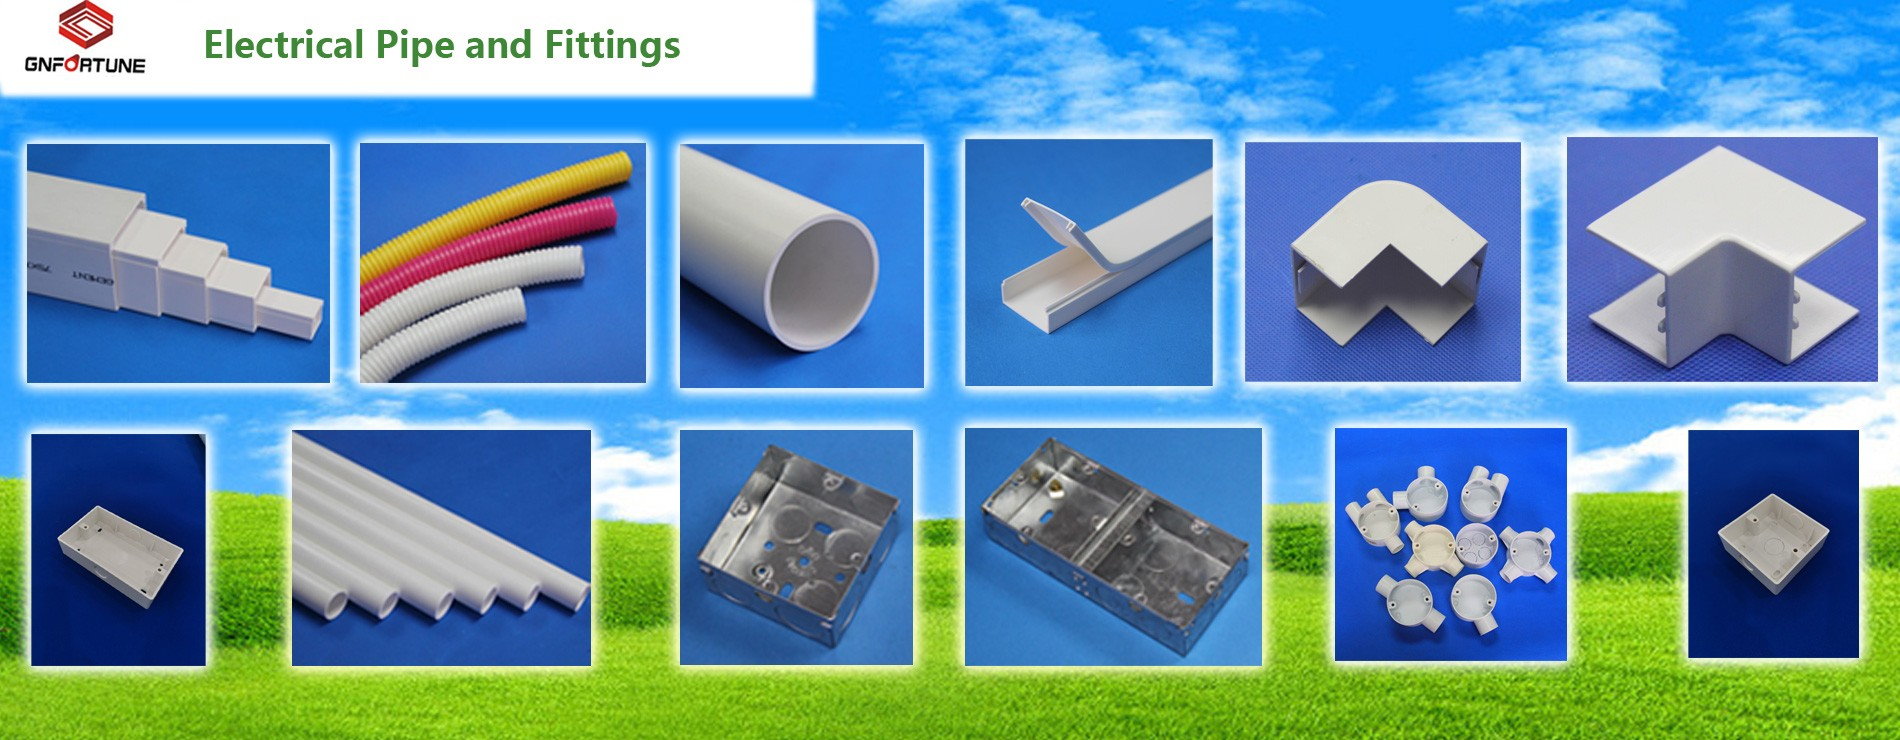 ELECTRICAL PVC CONDUIT PIPE AND FITTINGS